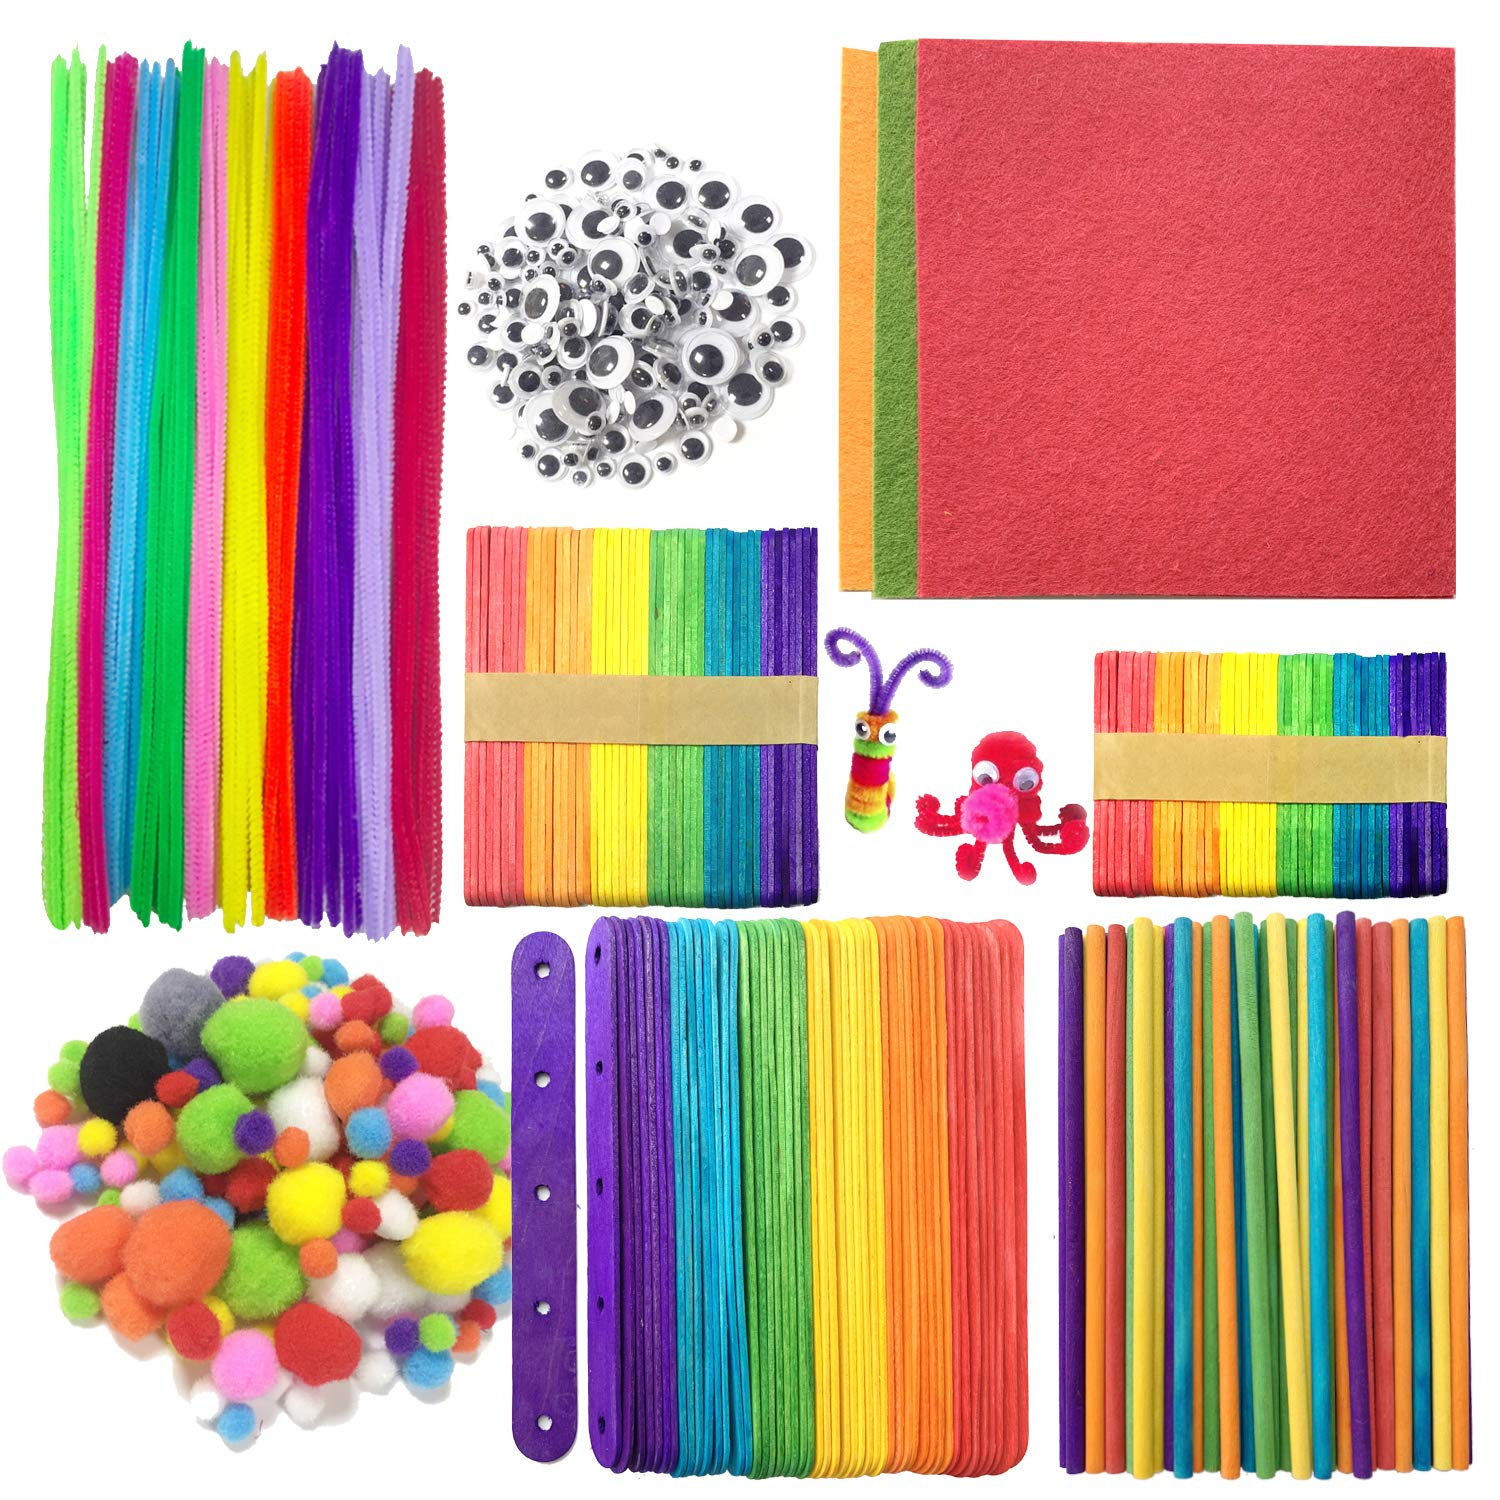 Wartoon Pipe Cleaners Chenille Stem and Pompoms with Googly Wiggle Eyes and Craft Sticks Non-Woven Felt Fabric Sheets for Craft DIY Art Supplies, 707 Pieces by Wartoon